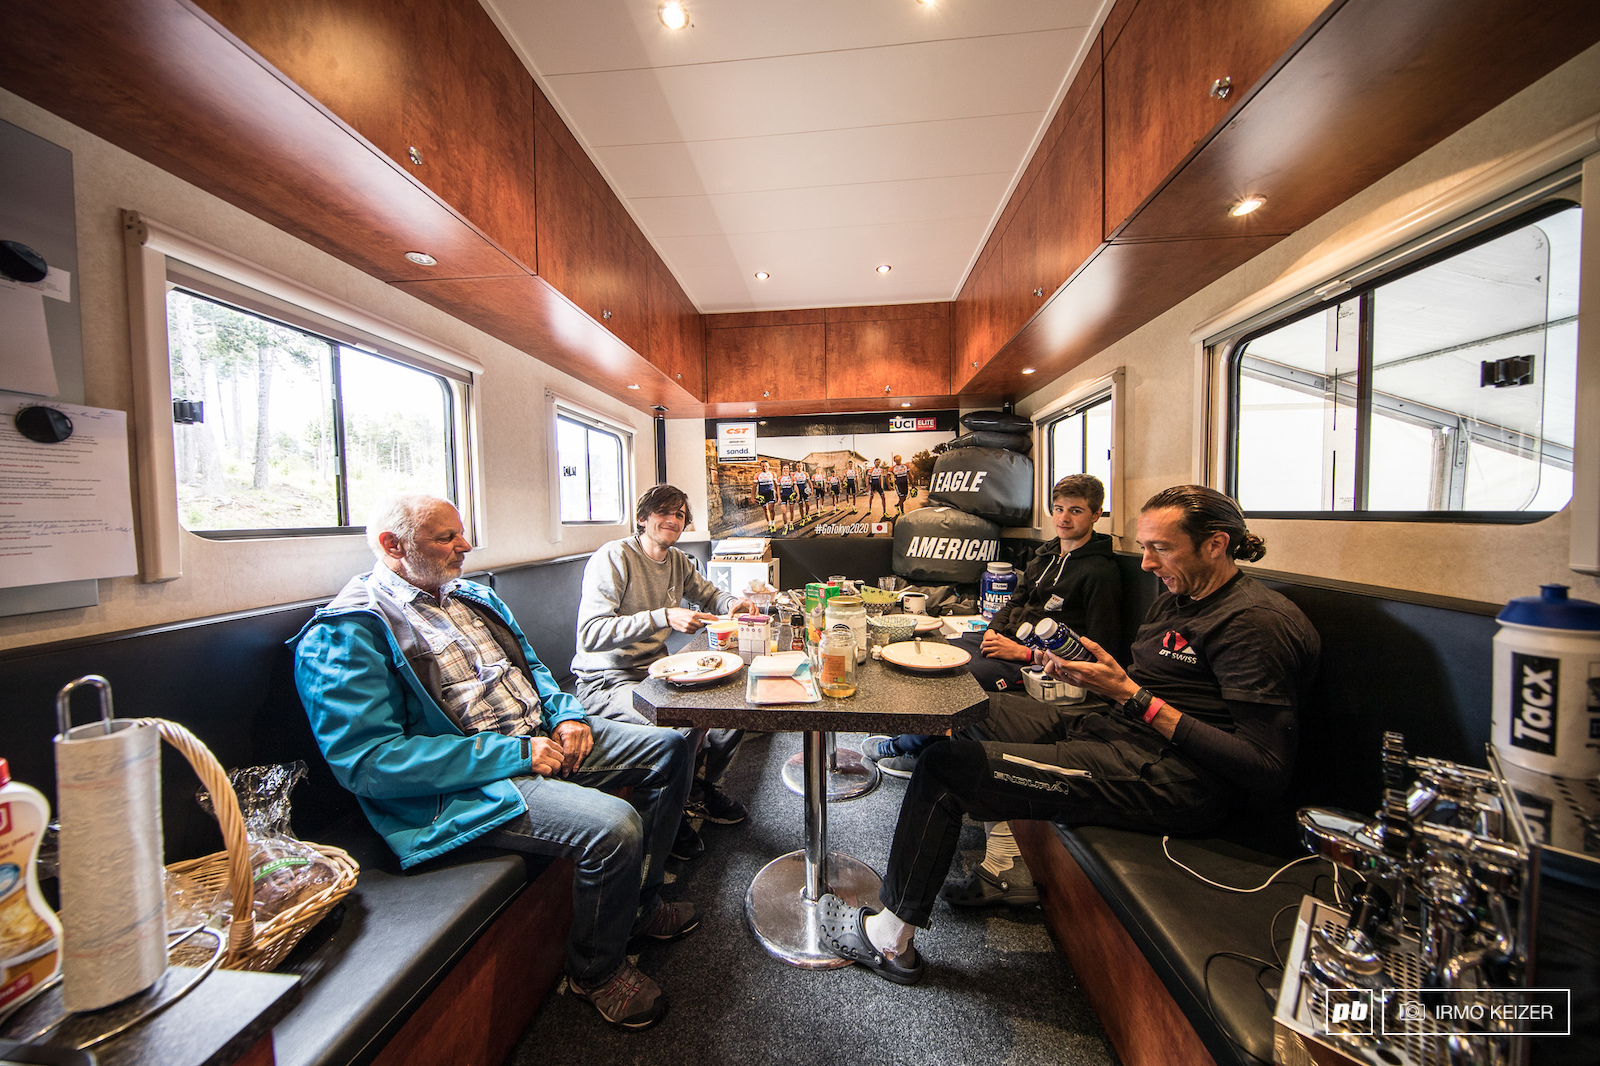 The inside of the truck houses a second seating area often used for breakfast for the team staff as well as for meetings.